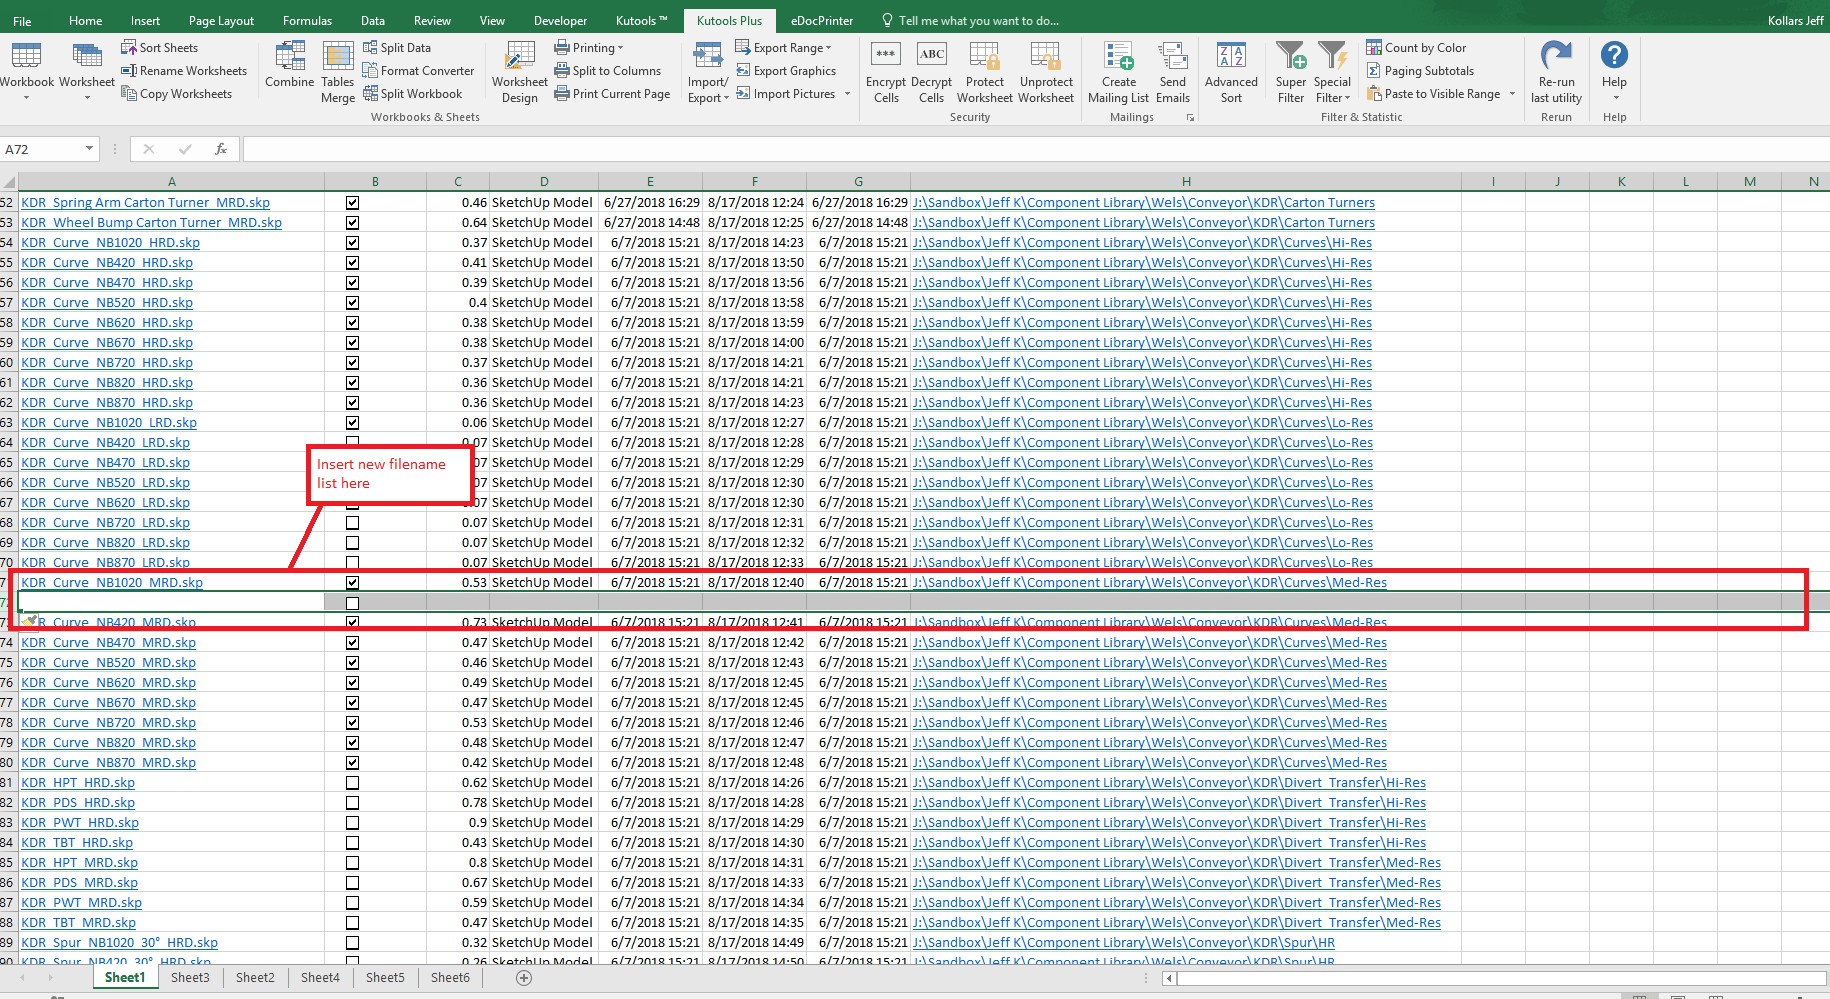 How To List All File Names From A Folder And Sub Folders Into A Worksheet